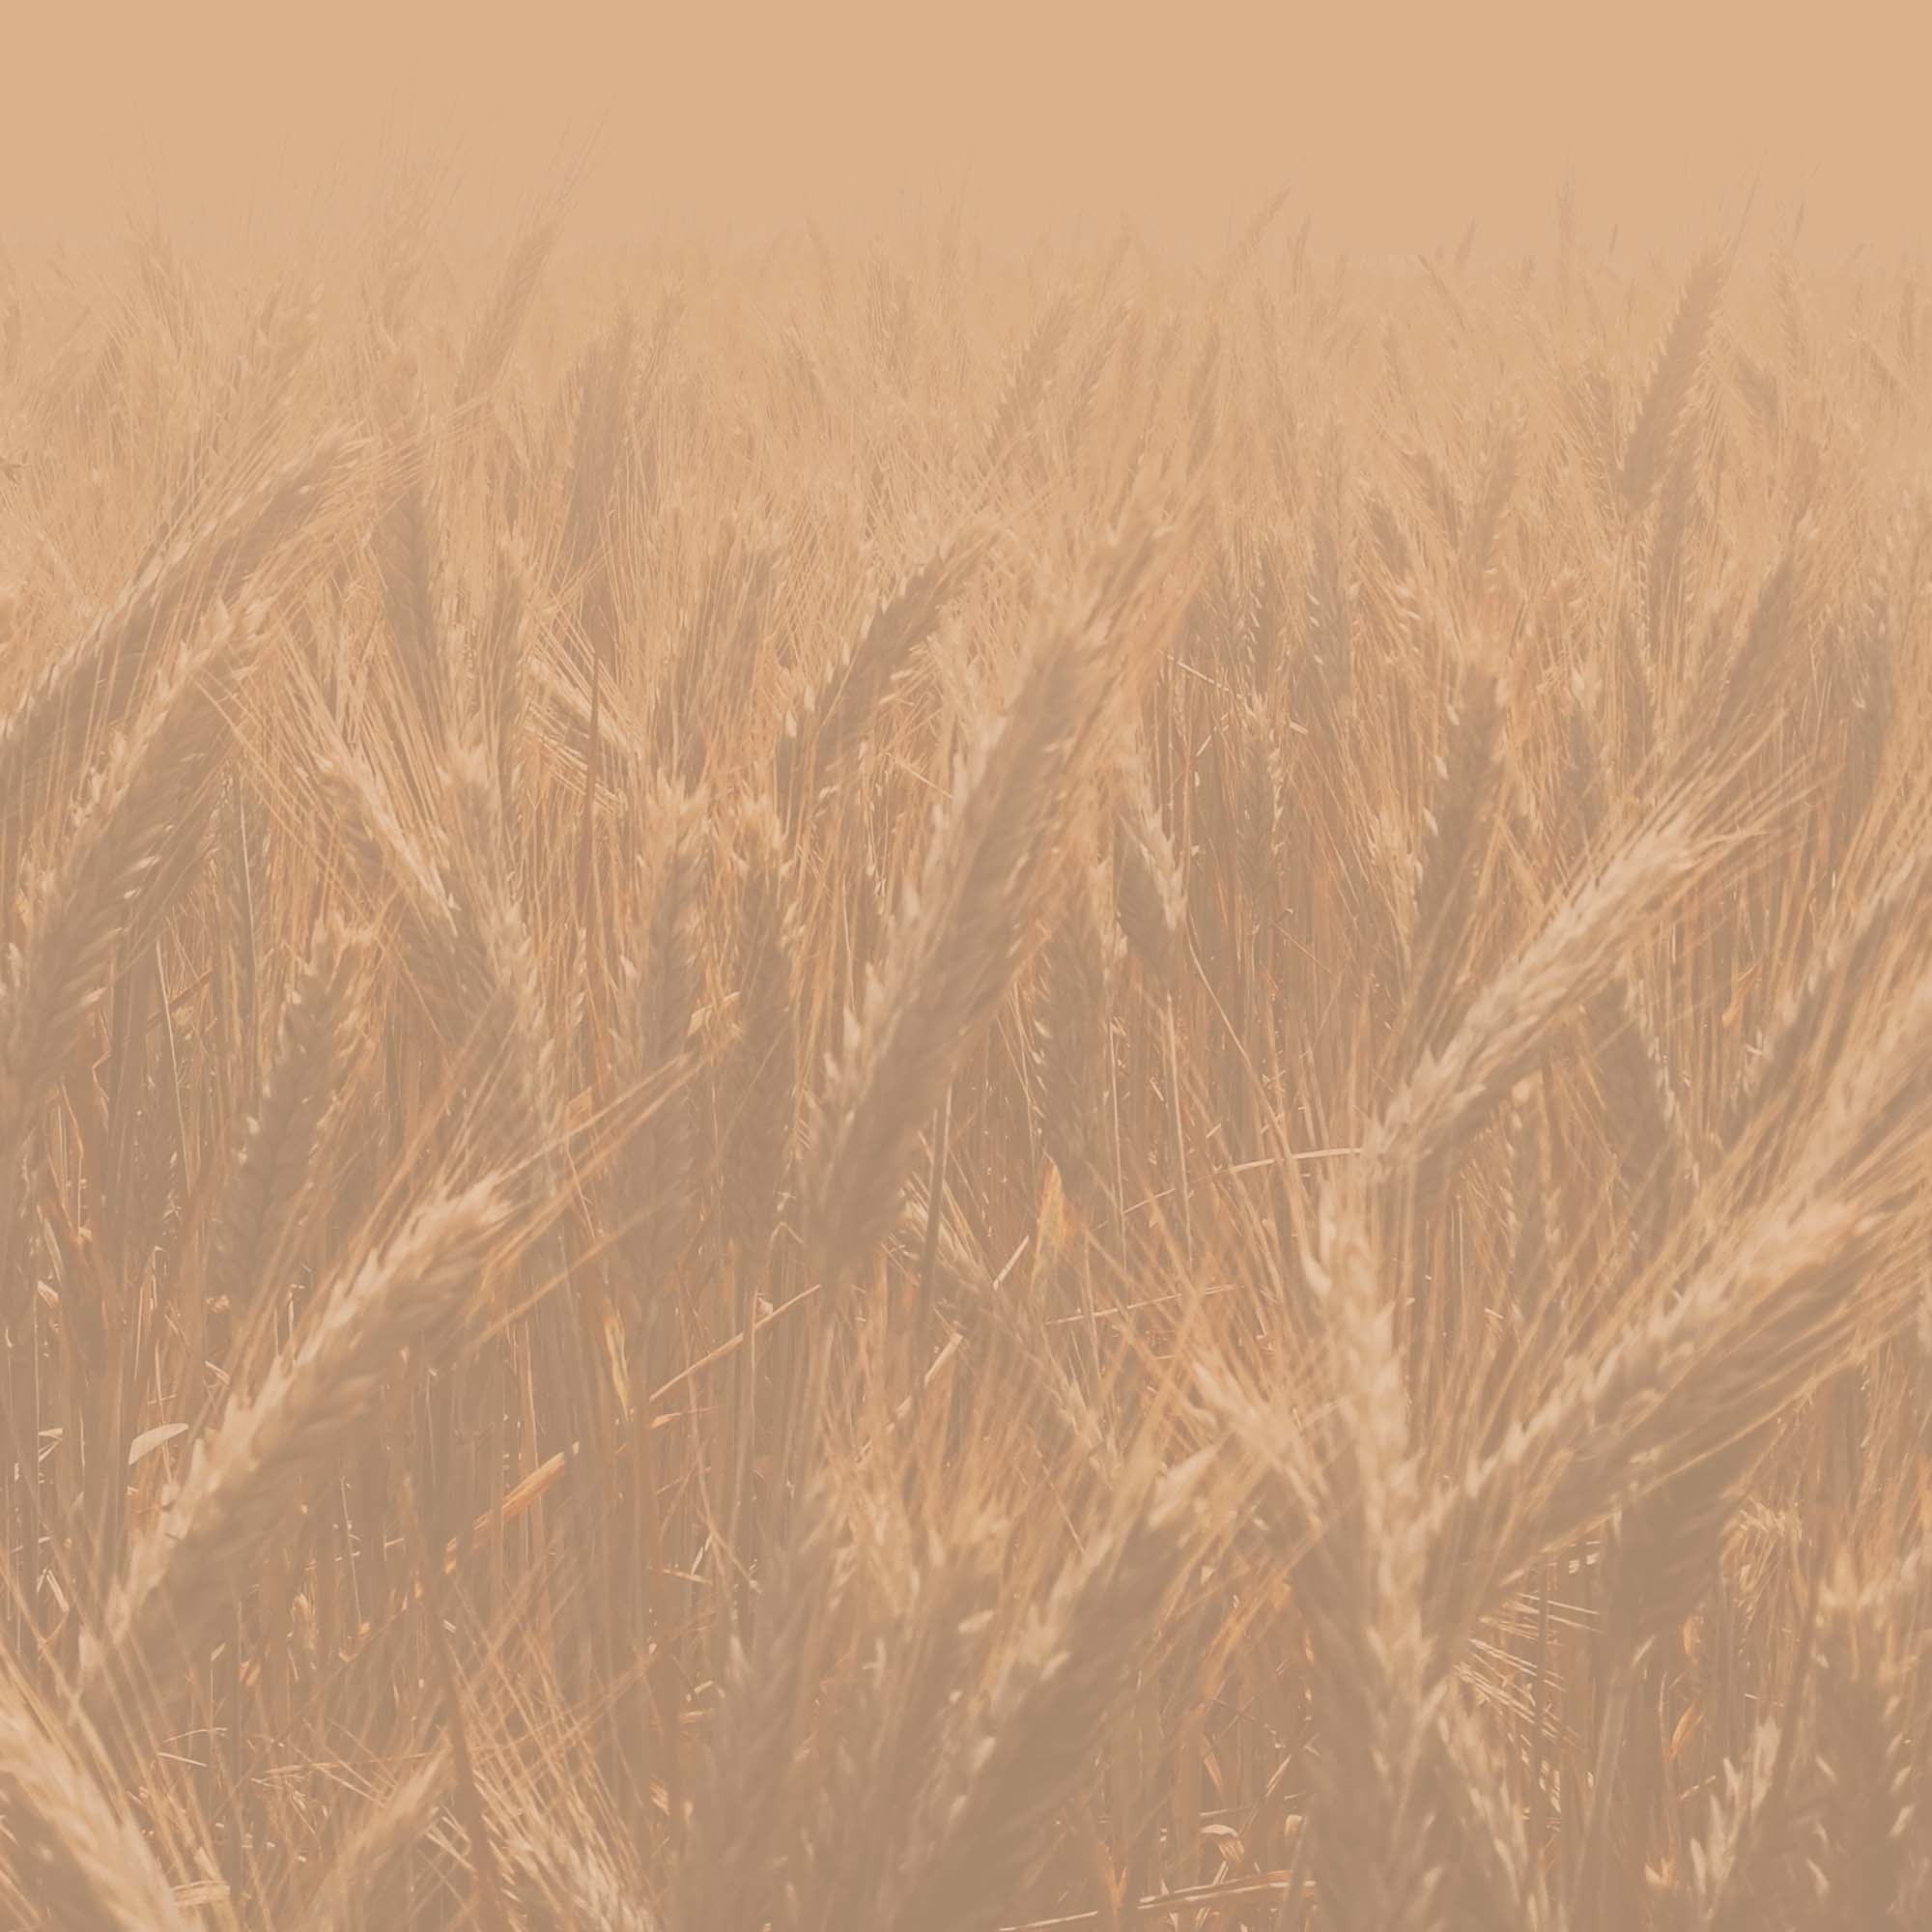 background image of wheat field